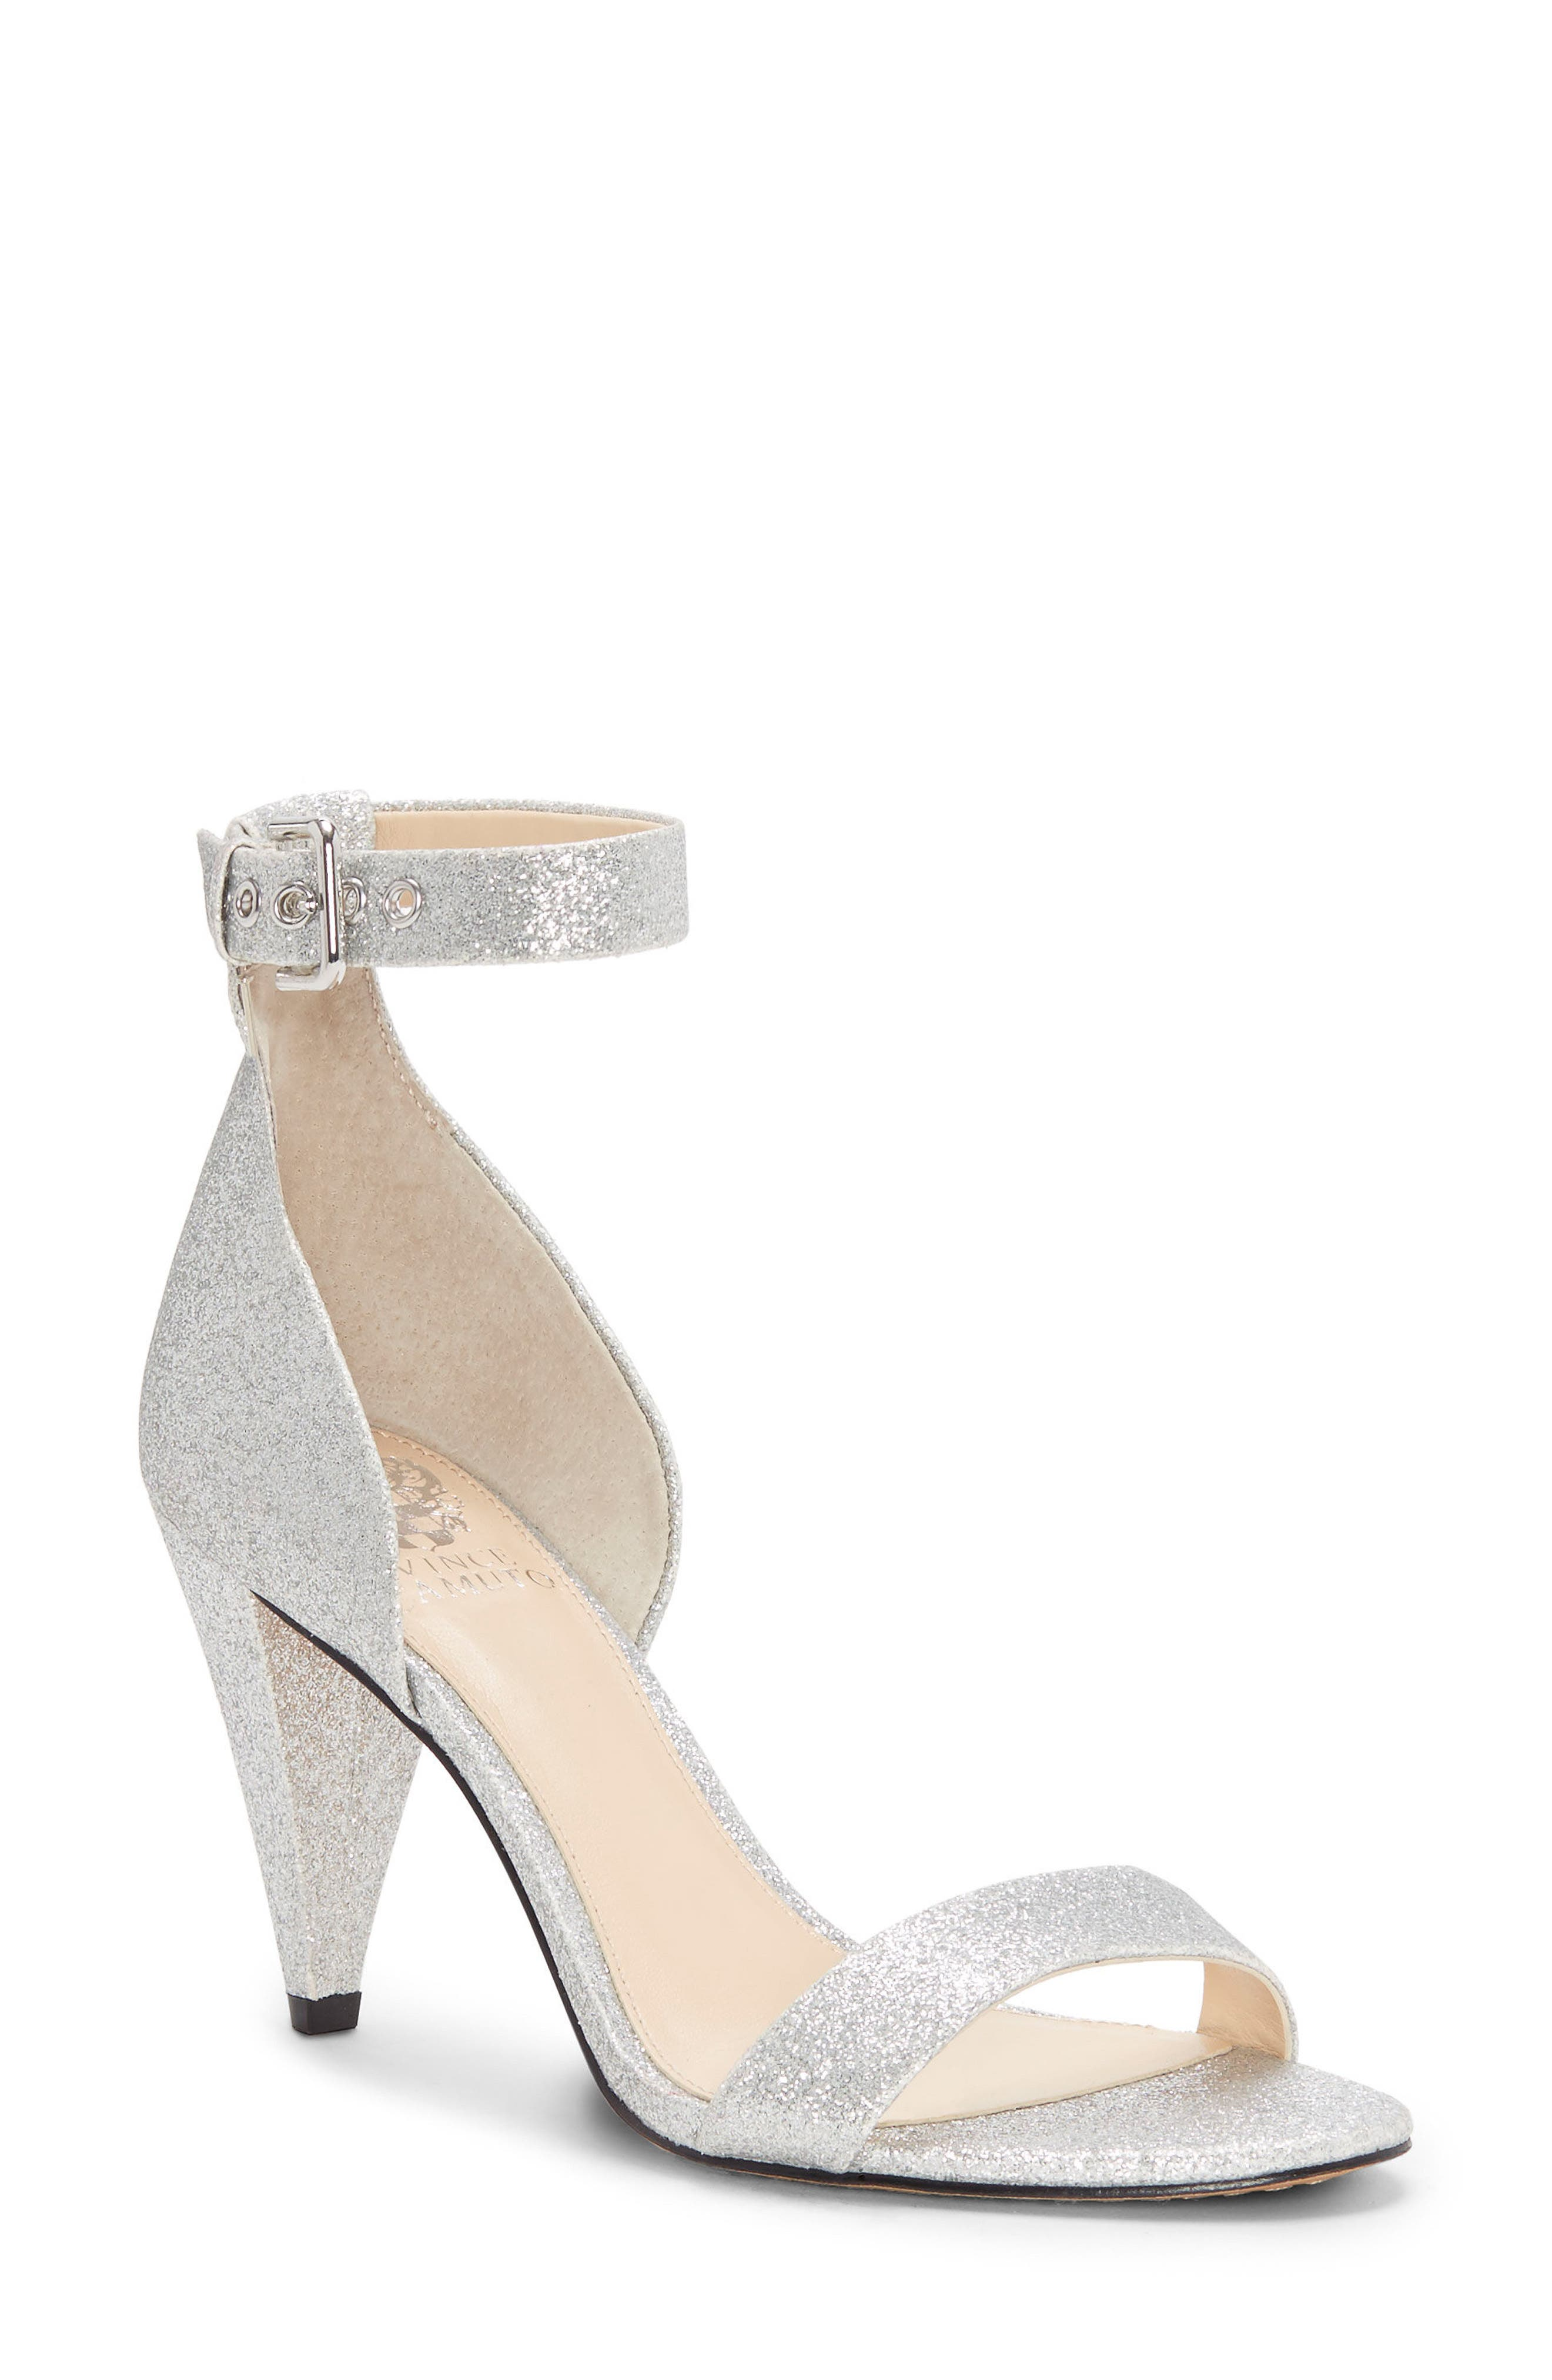 Cashane Sandal,                         Main,                         color, Radiant Silver Fabric